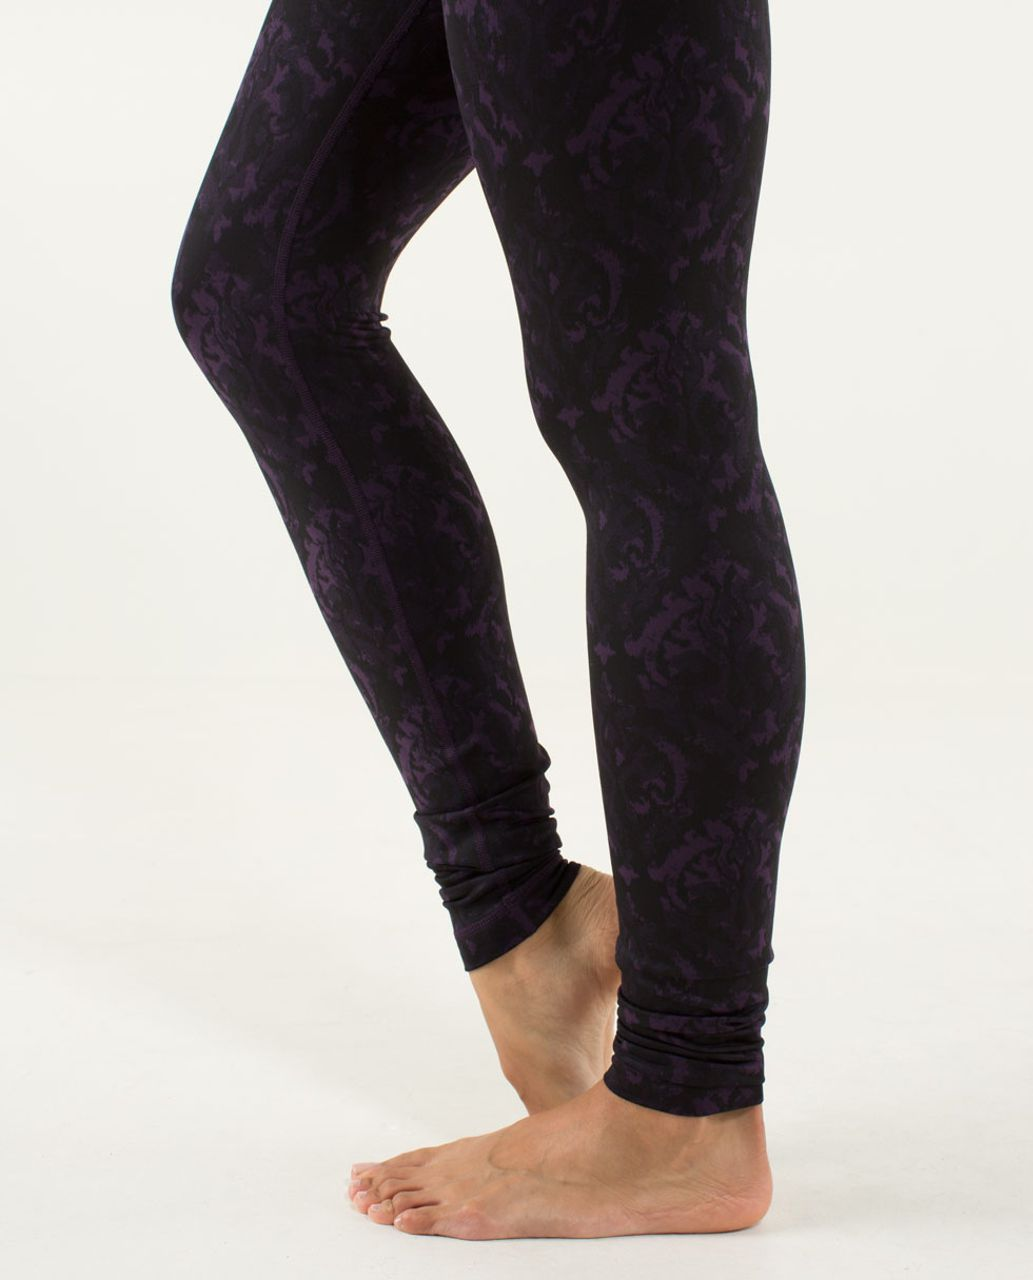 Lululemon Wunder Under Pant - Beautiful Baroque Deep Zinfandel / Deep Zinfandel